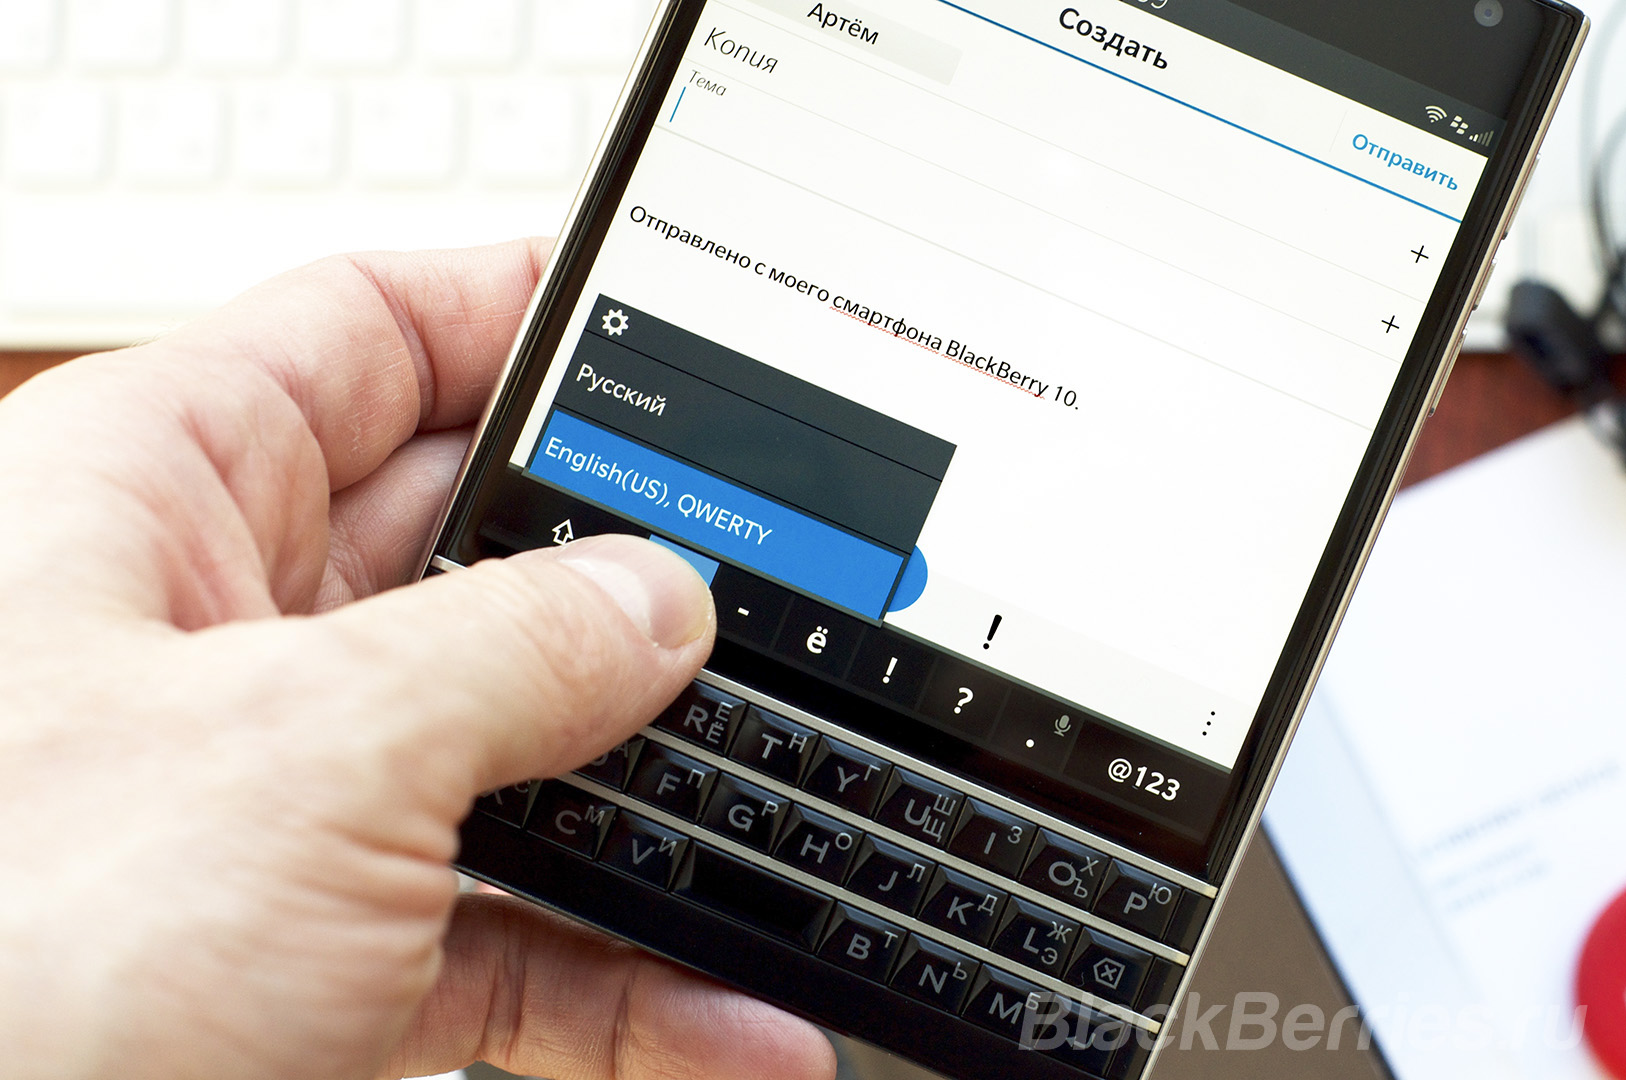 BlackBerry-Passport-Review-2016-21